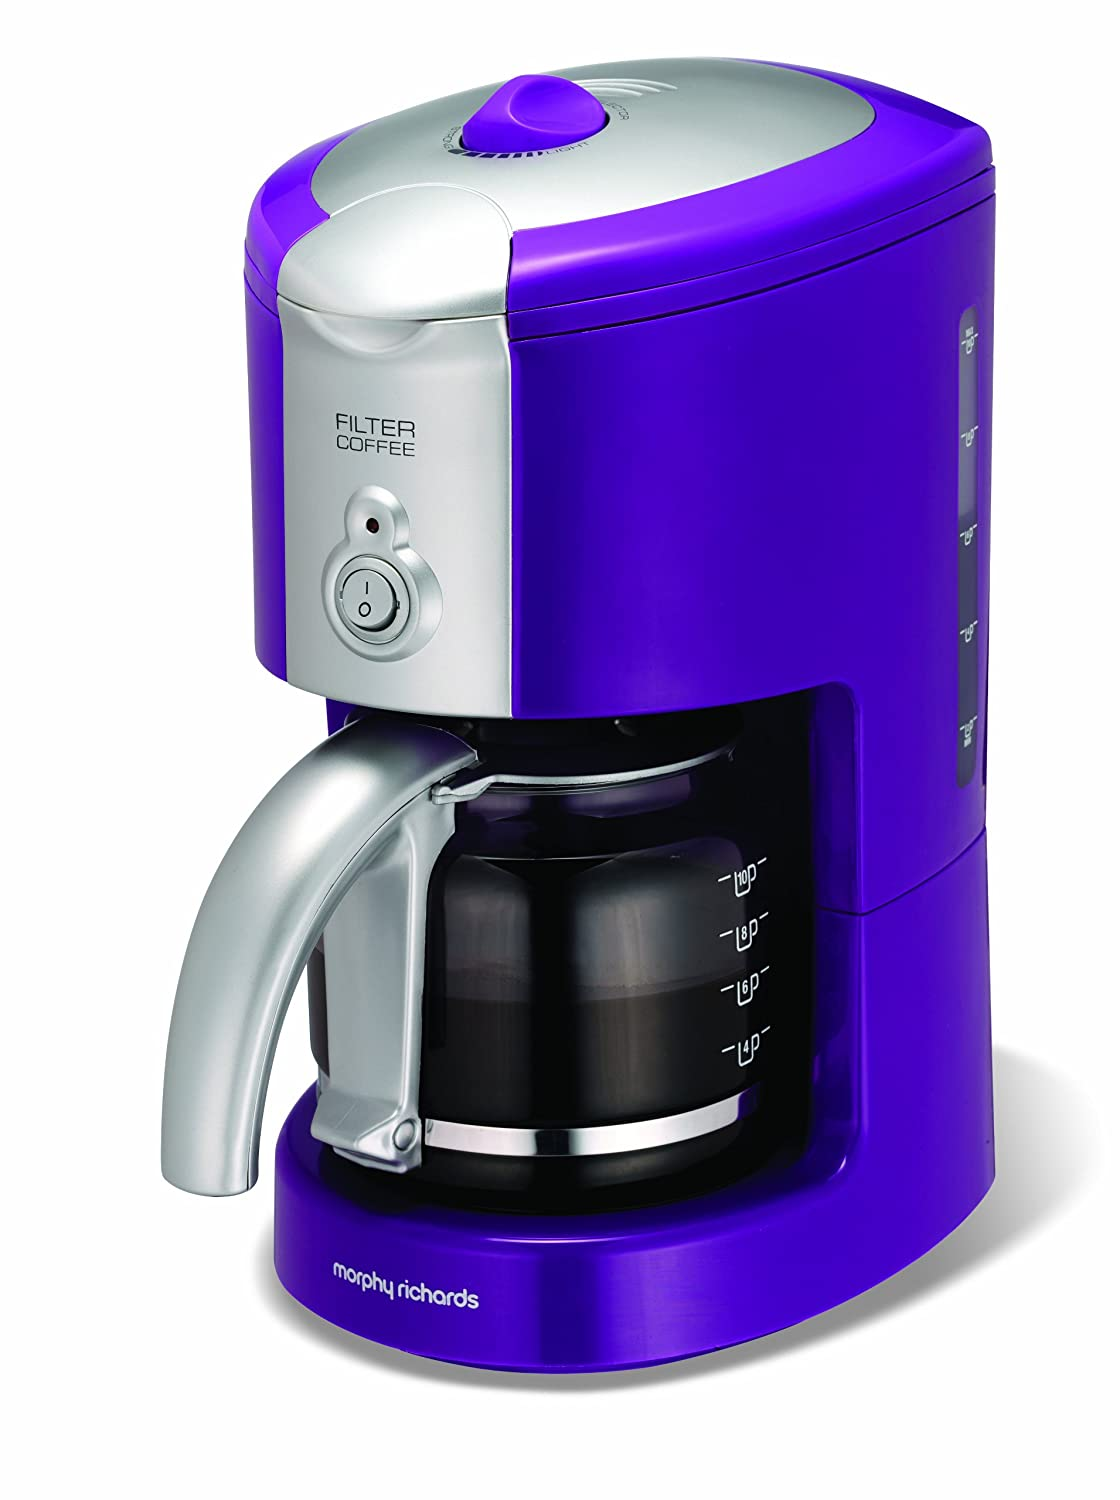 Morphy Richards Compliments 47057 Filter Coffee Maker